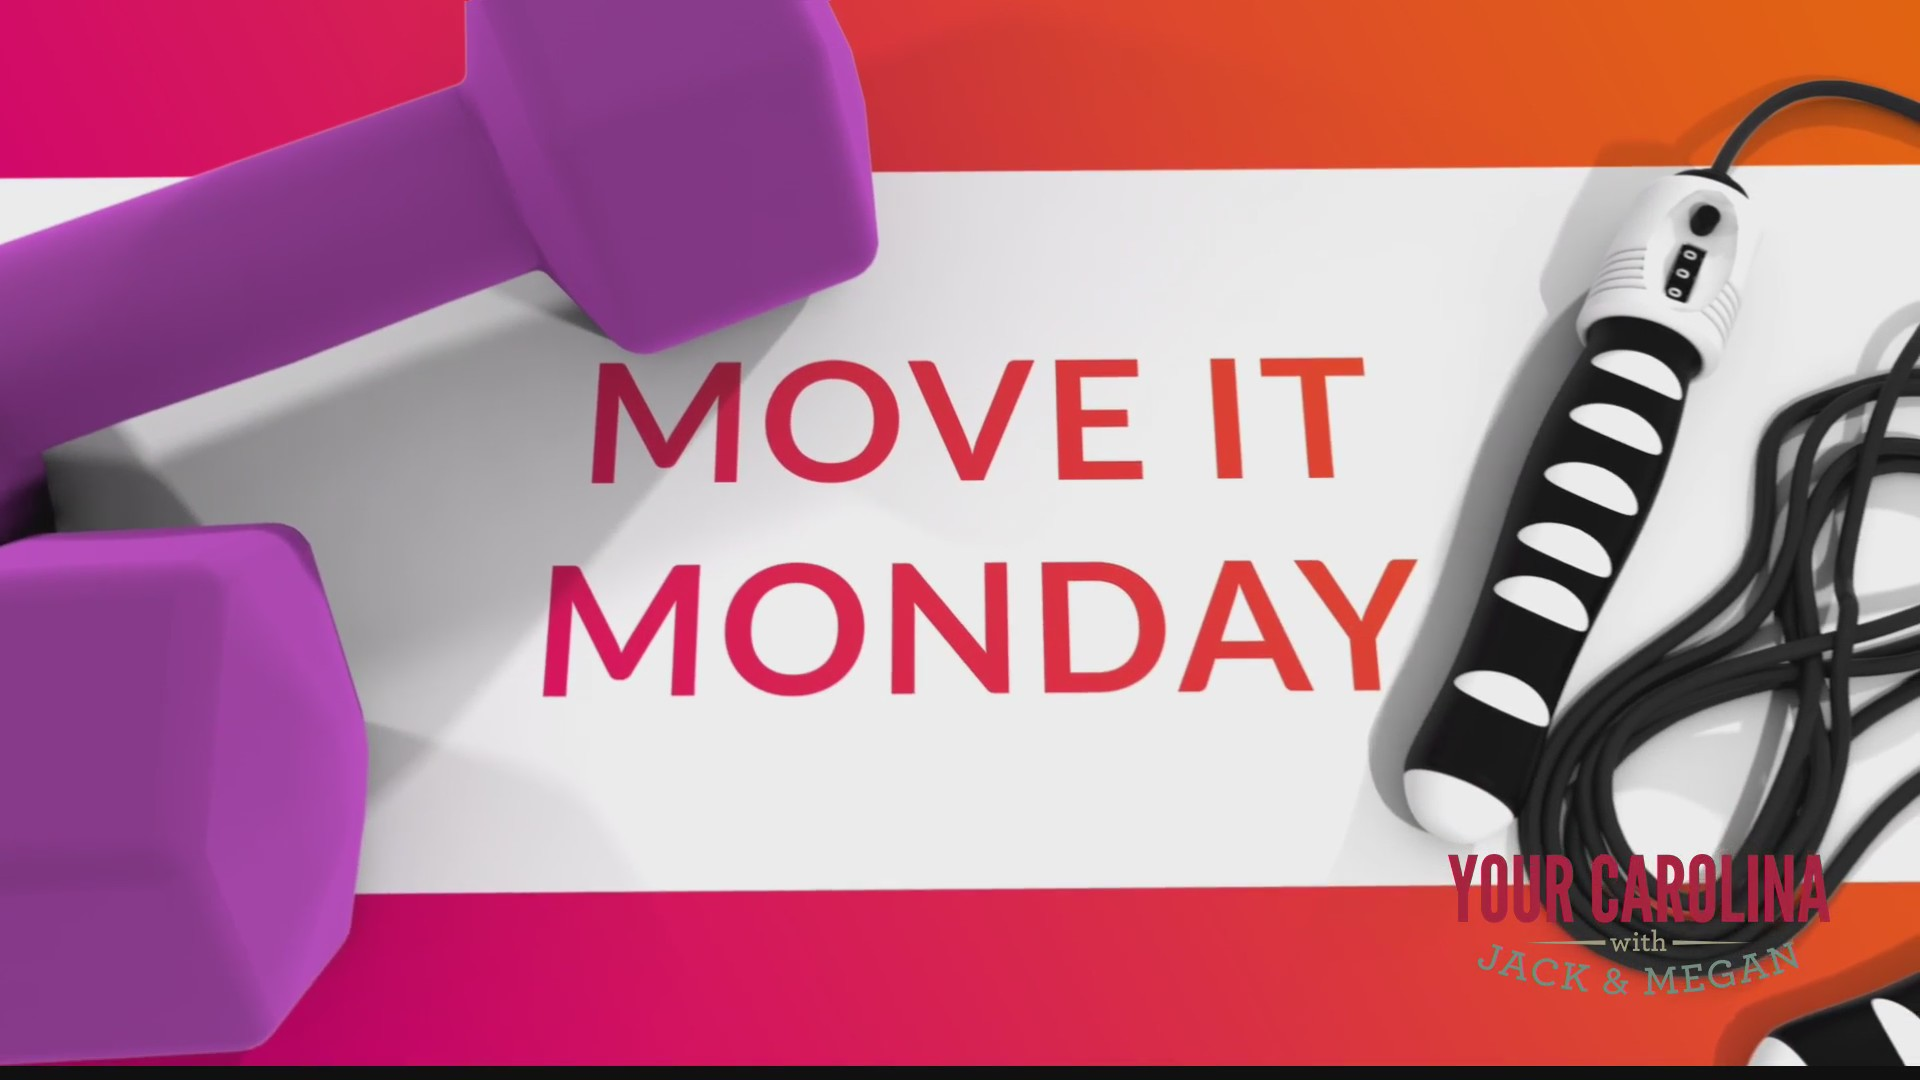 Move It Monday - Personal Trainer Olly Pierce